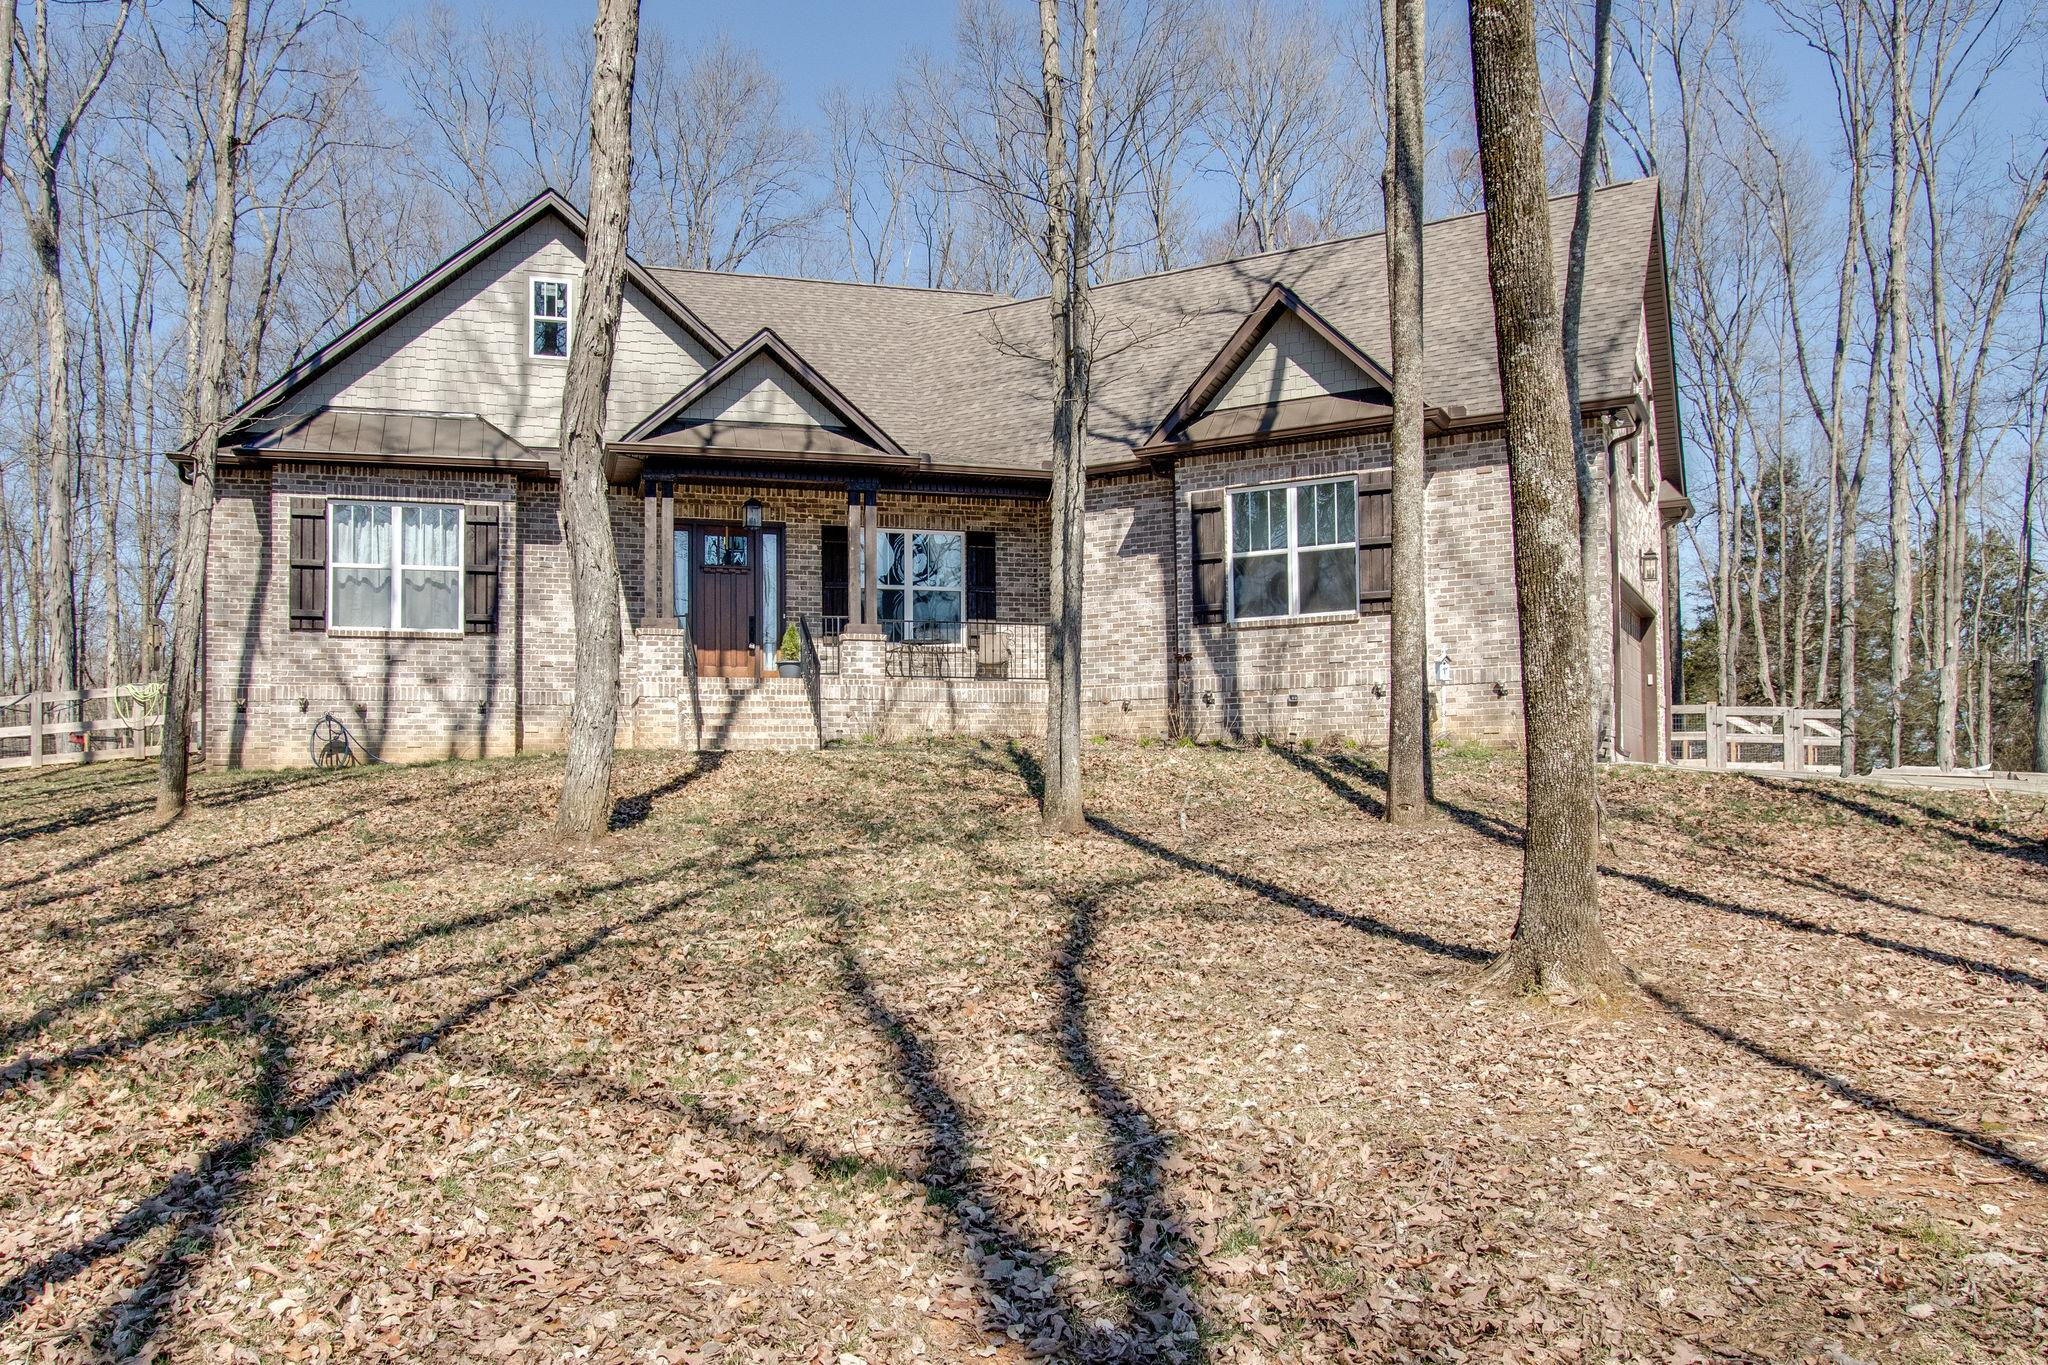 520A Crowell Ln, Lebanon, TN 37087 - Lebanon, TN real estate listing